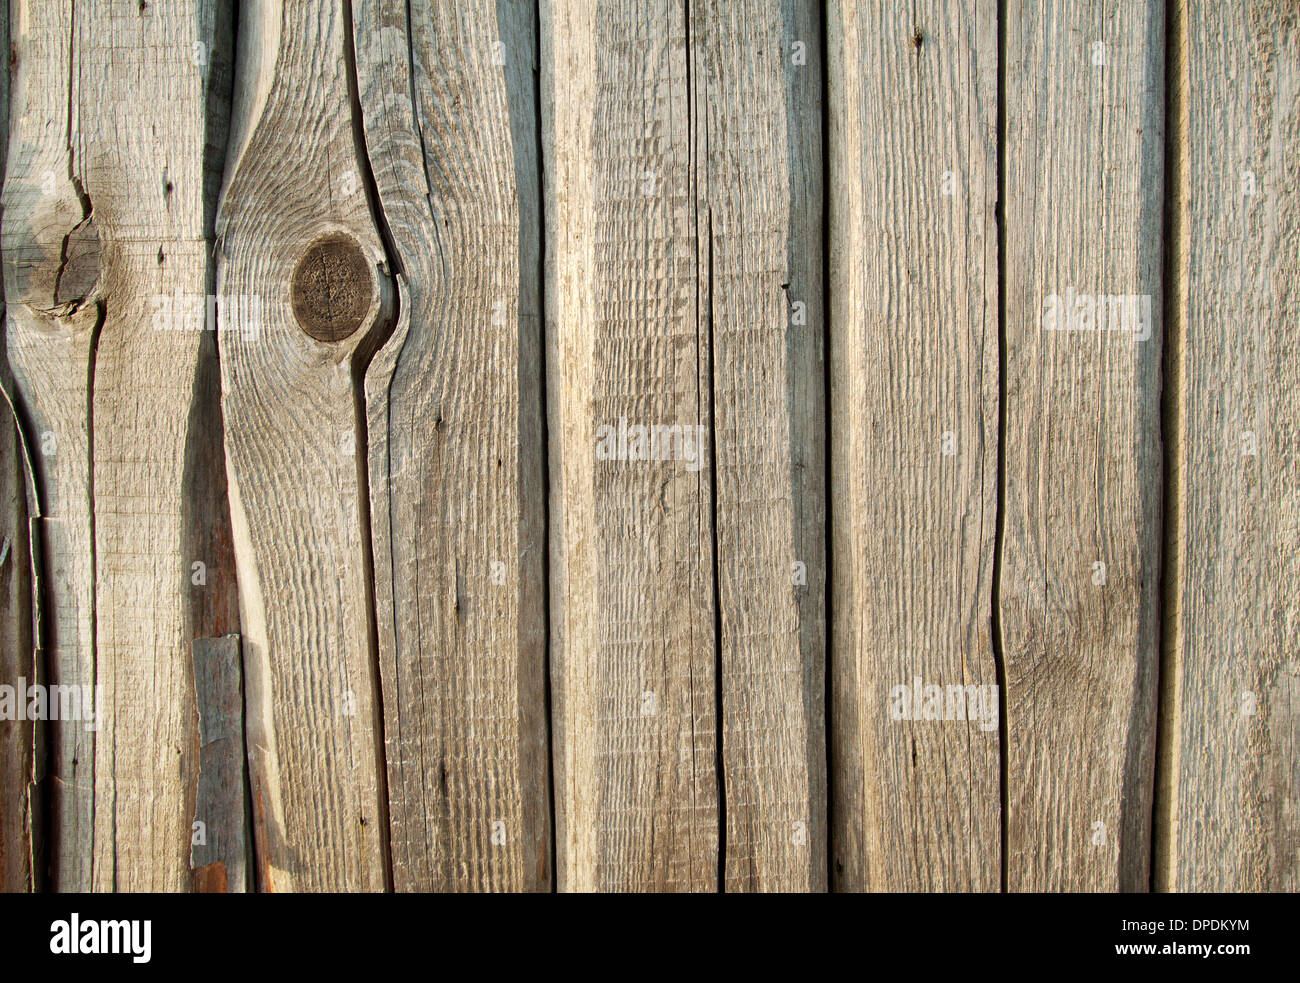 Background of cracked rough planks with knots - Stock Image